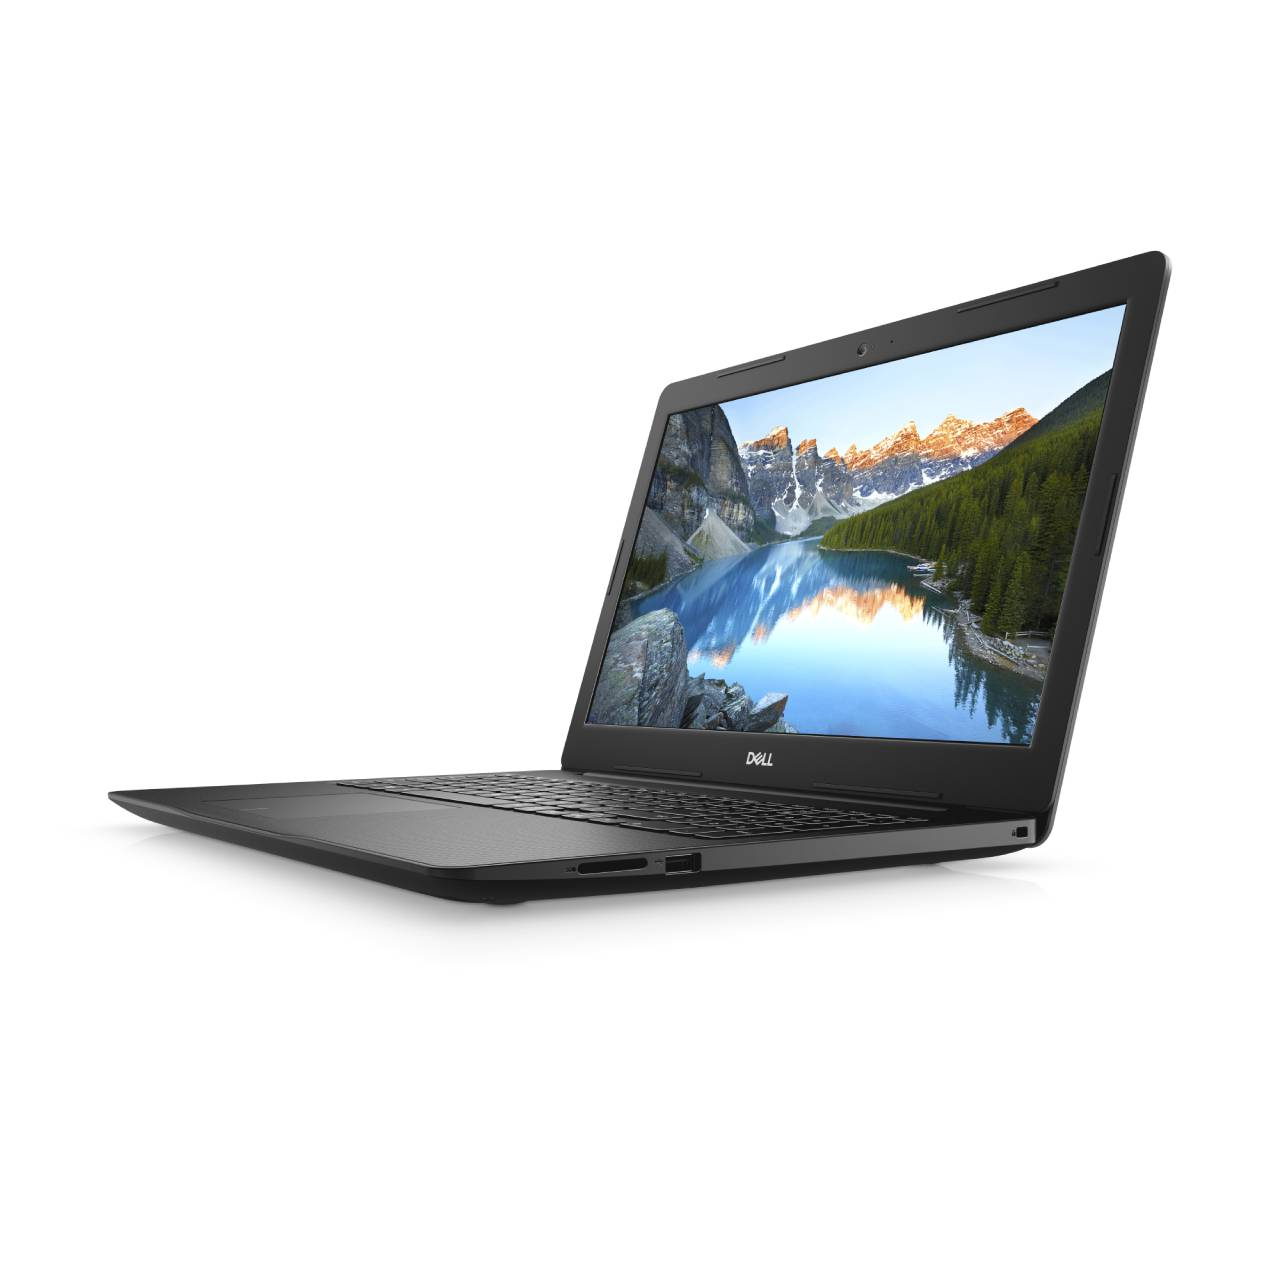 Dell Inspiron 15 3580 Laptop 15 6